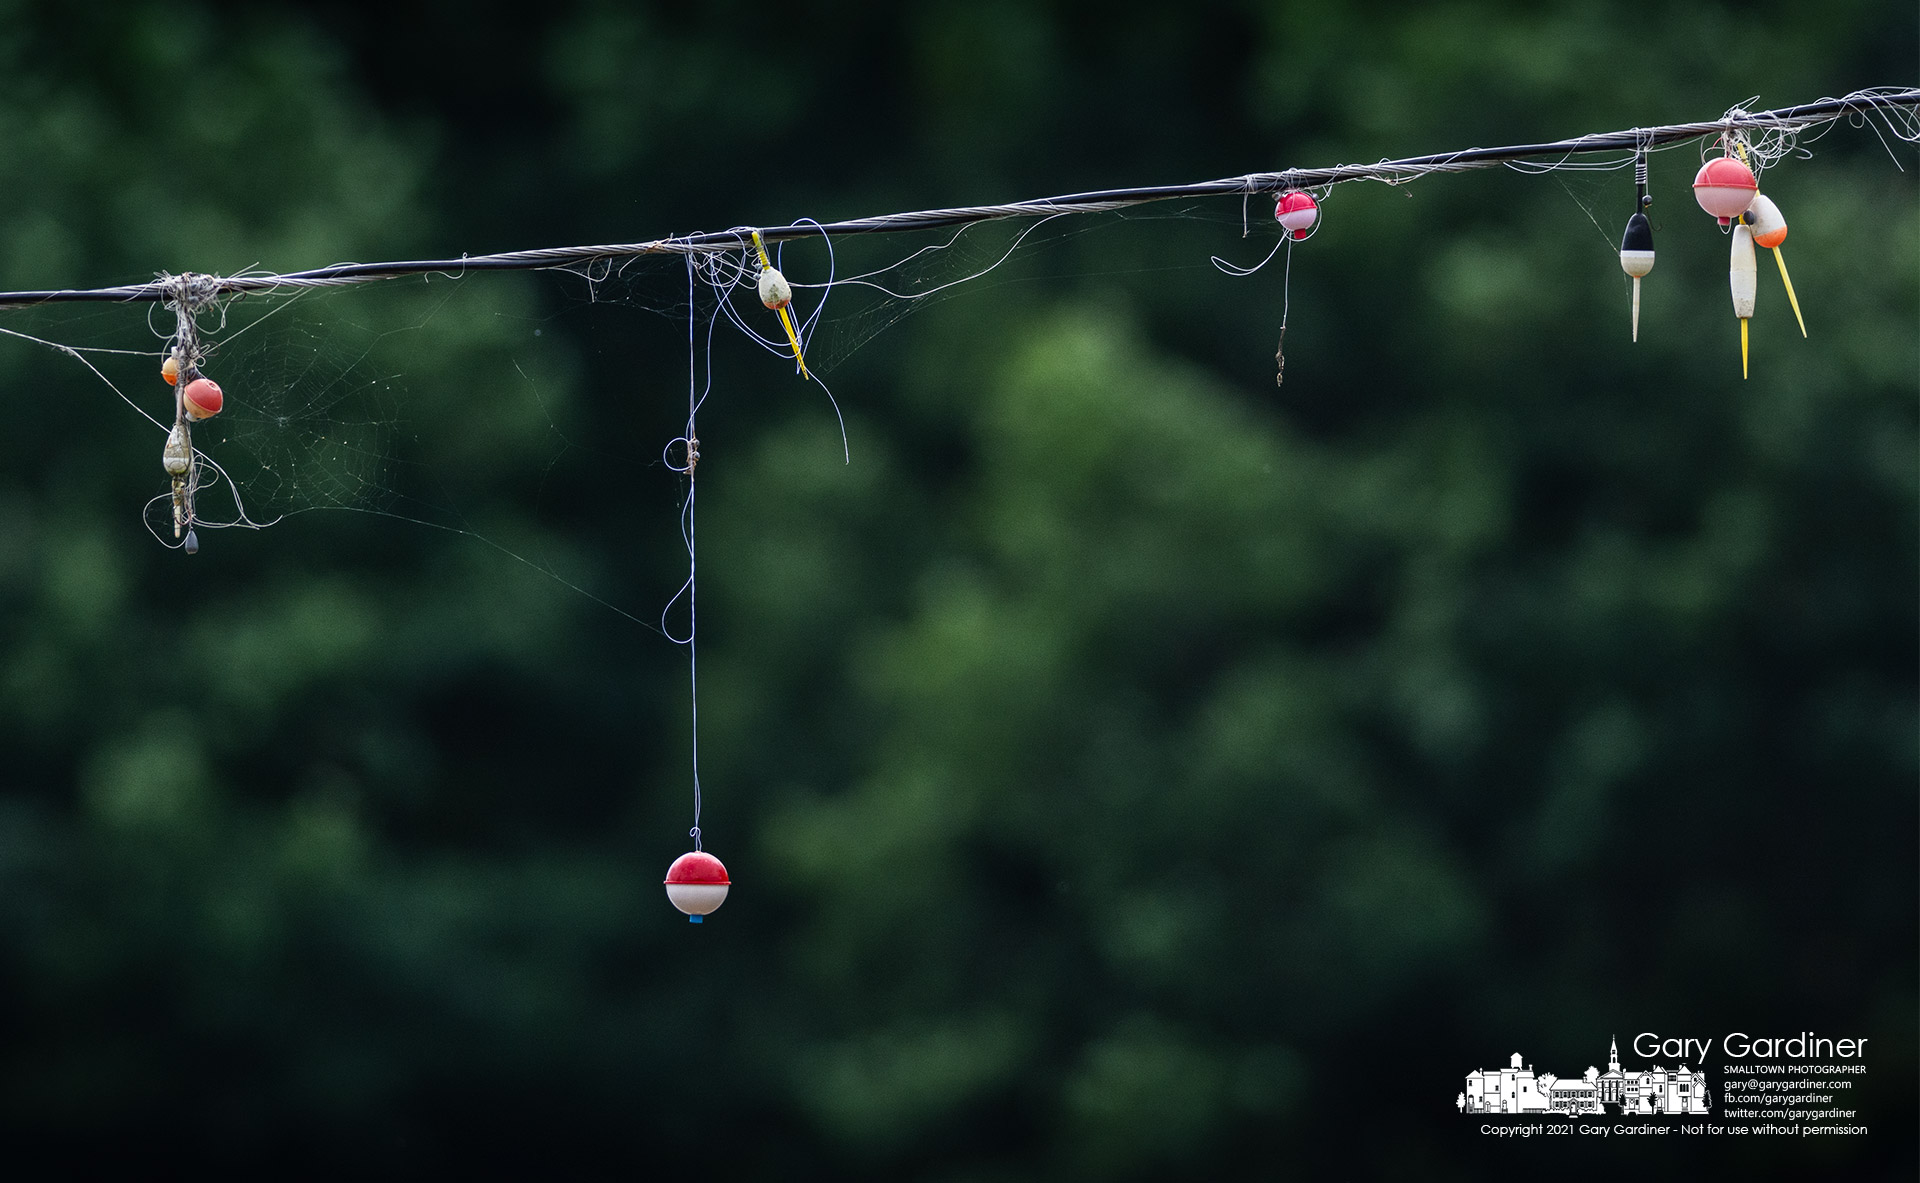 A collection of fishing bobbers, hooks, and lines hangs from an electric line connecting lights near the lake at Twin Bridge Marina on Hoover Reservoir. My Final Photo for Aug. 15, 2021.